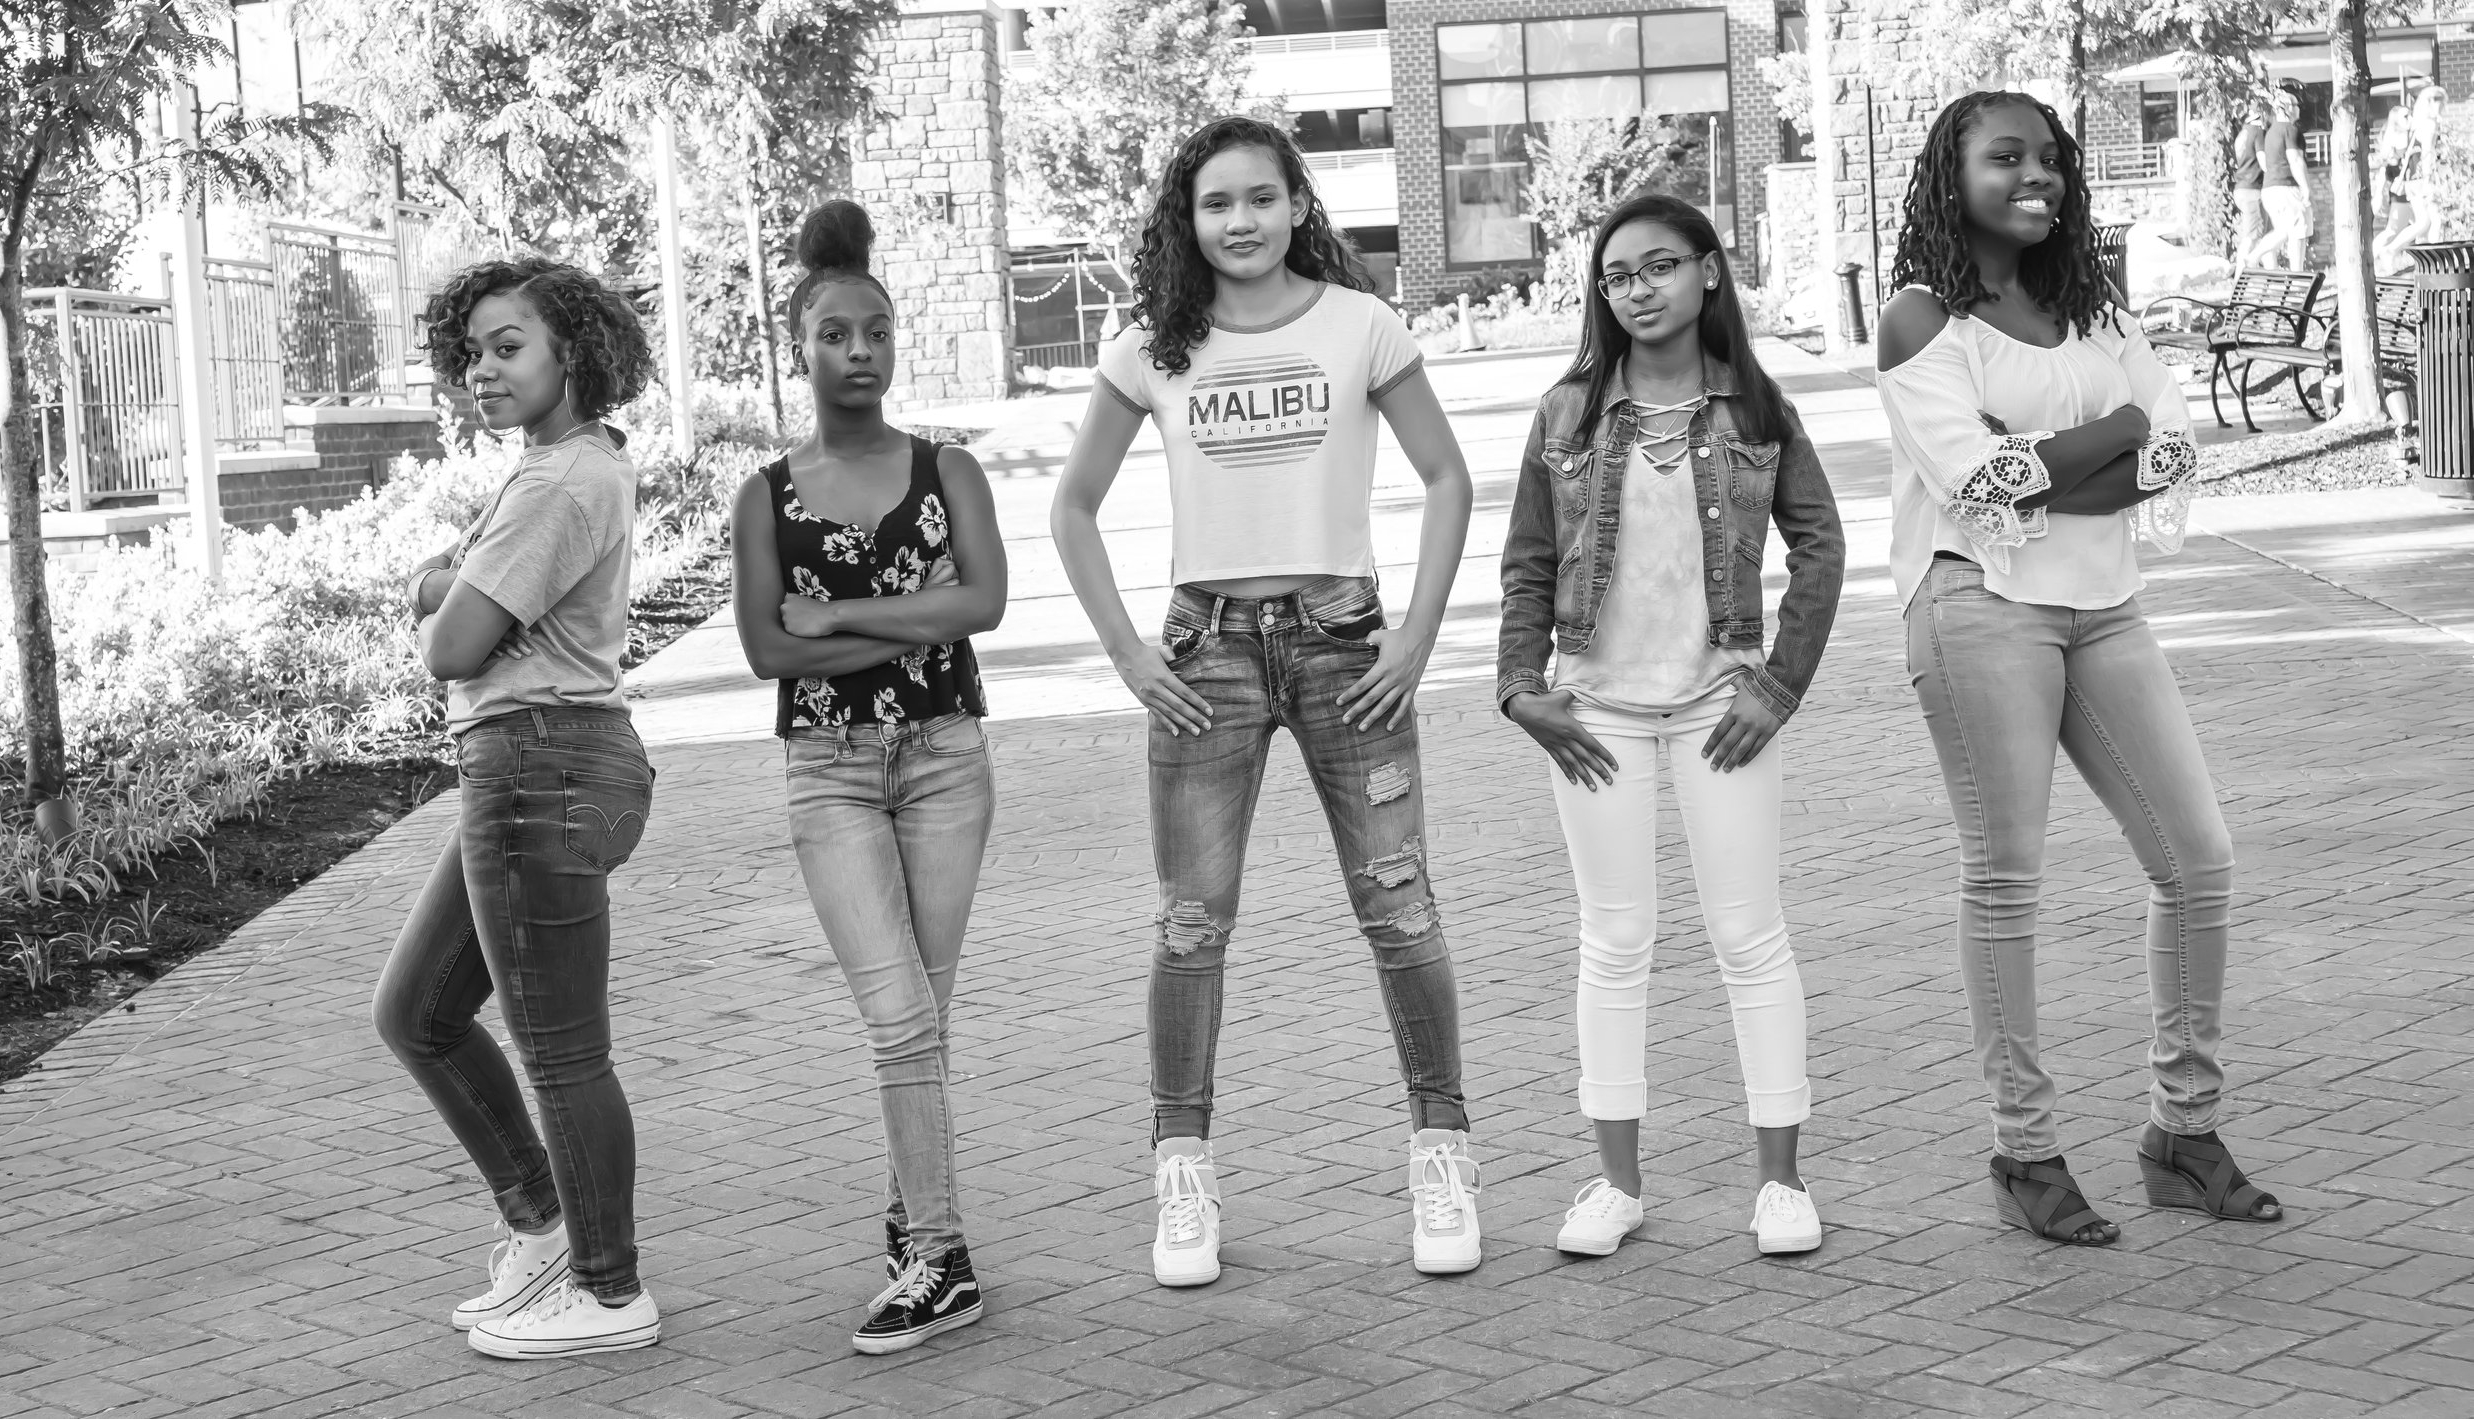 SHE - left to right-  Reyna  (vocals, keys)  Kaili  (cajon, percussion, vocals)  Leilani  (guitar, bass, keys, vocals)  Kaylyn  (keys, bass keys, vocals)  Amaya  (percussion, Roland pad, vocals)